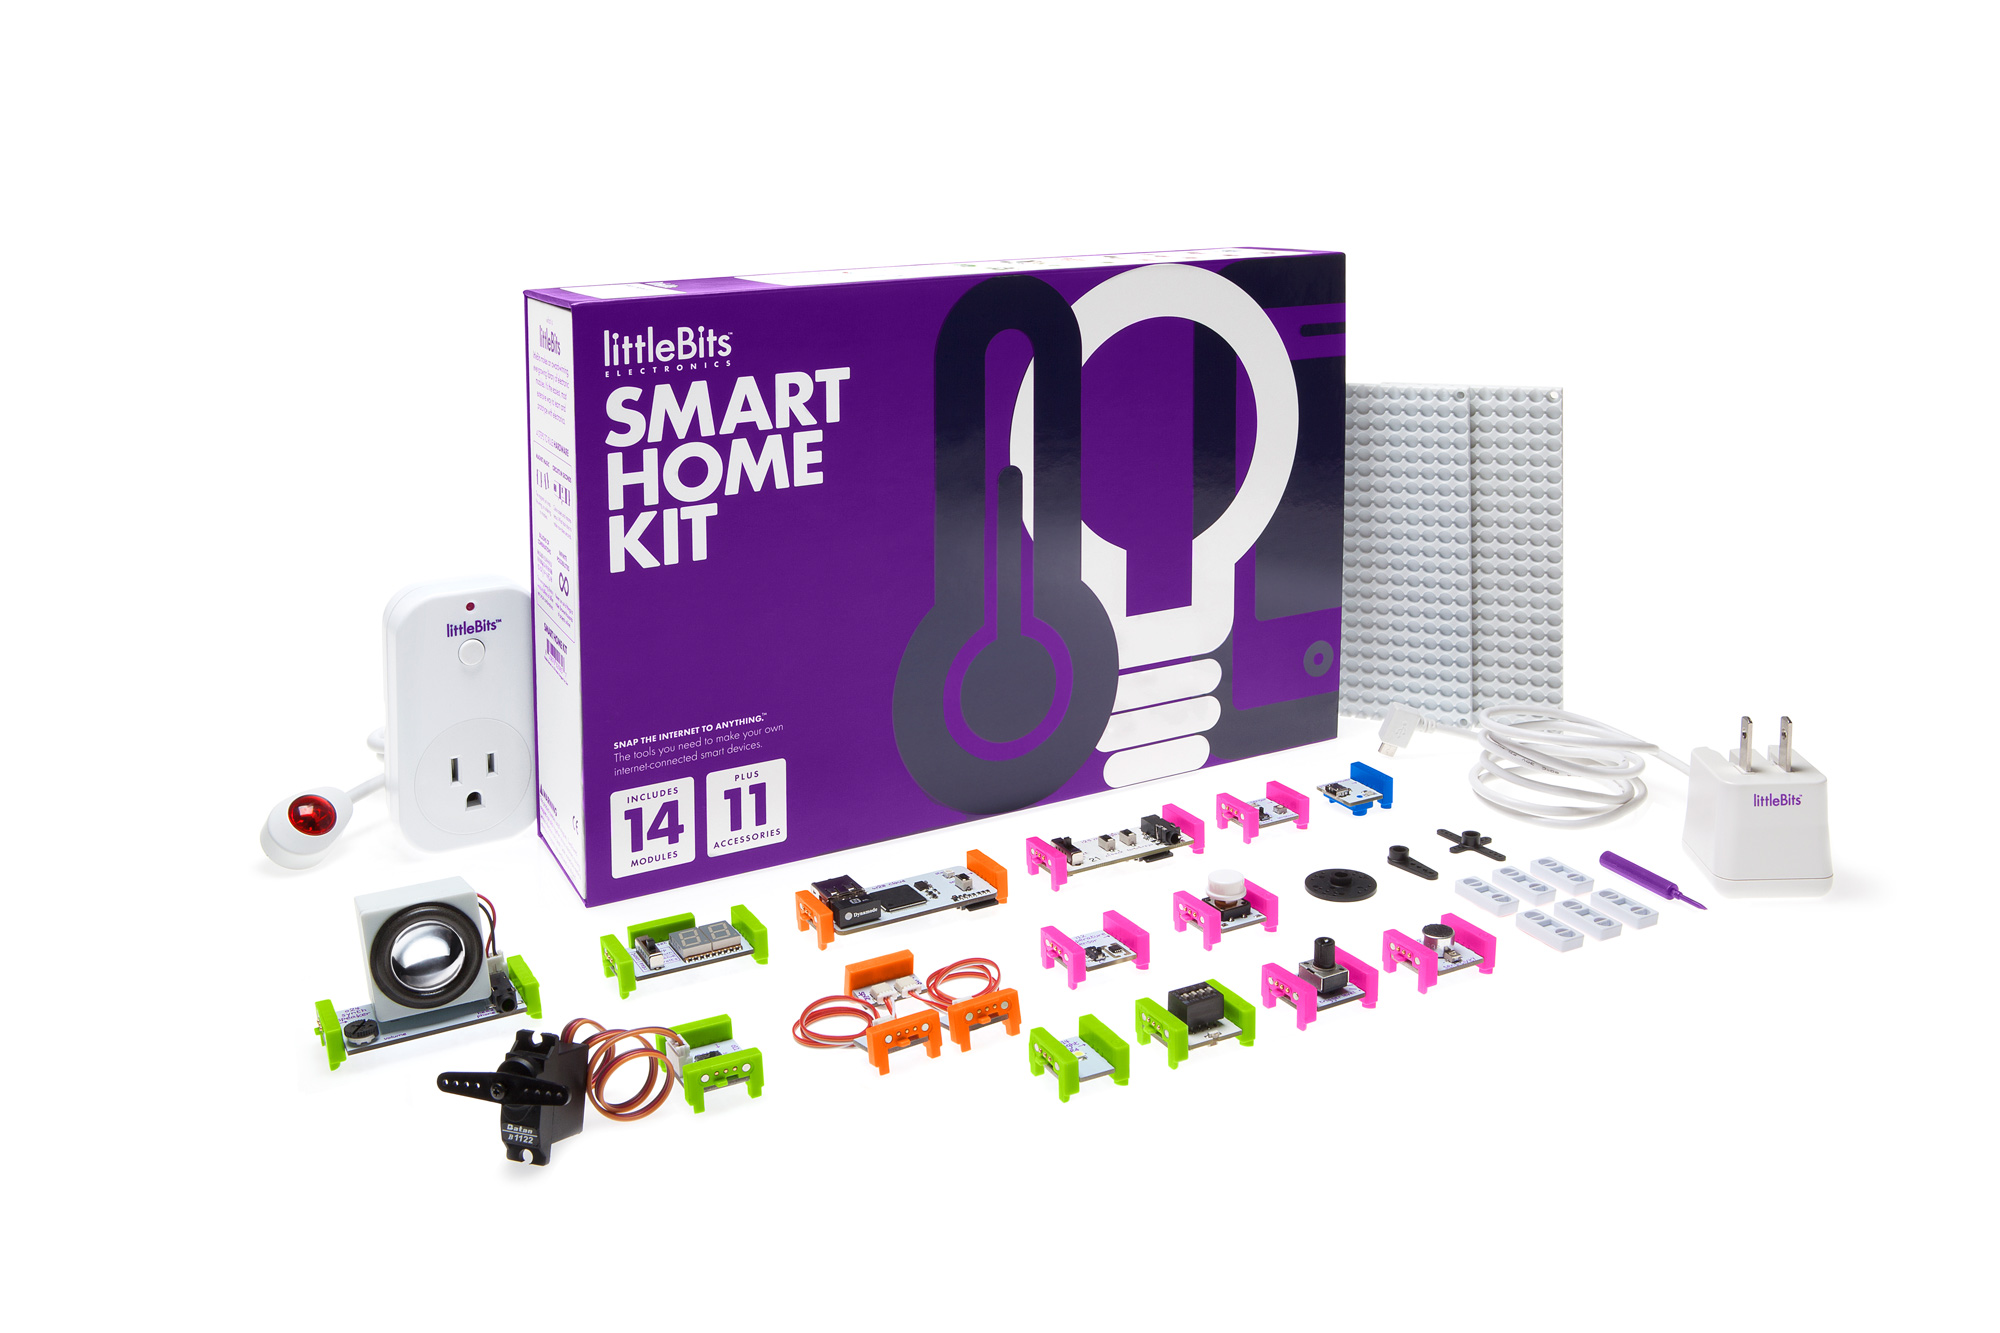 Littlebits Introduces Internet Of Things Enabled Smart